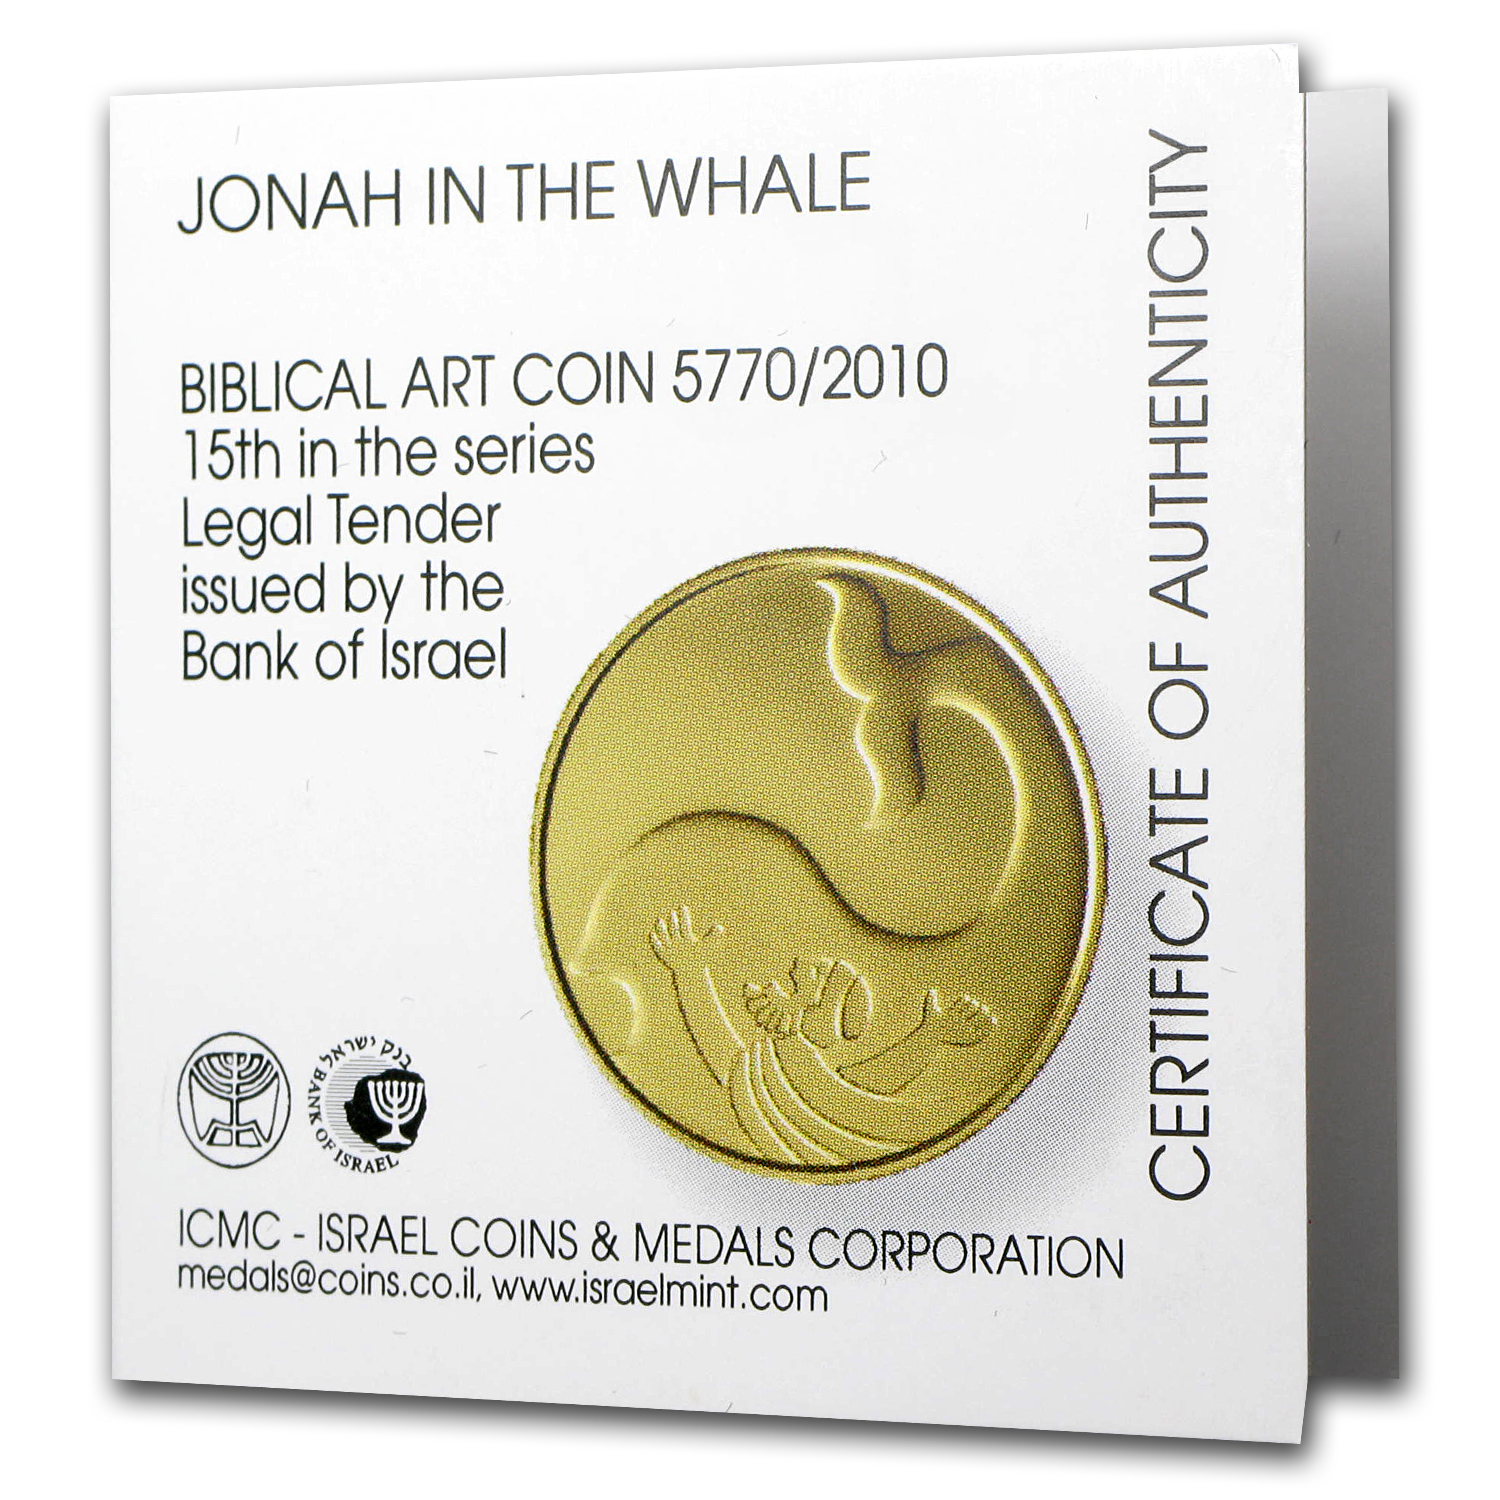 2010 0.428 oz Silver Israel Jonah & Whale 1 NIS Proof-Like